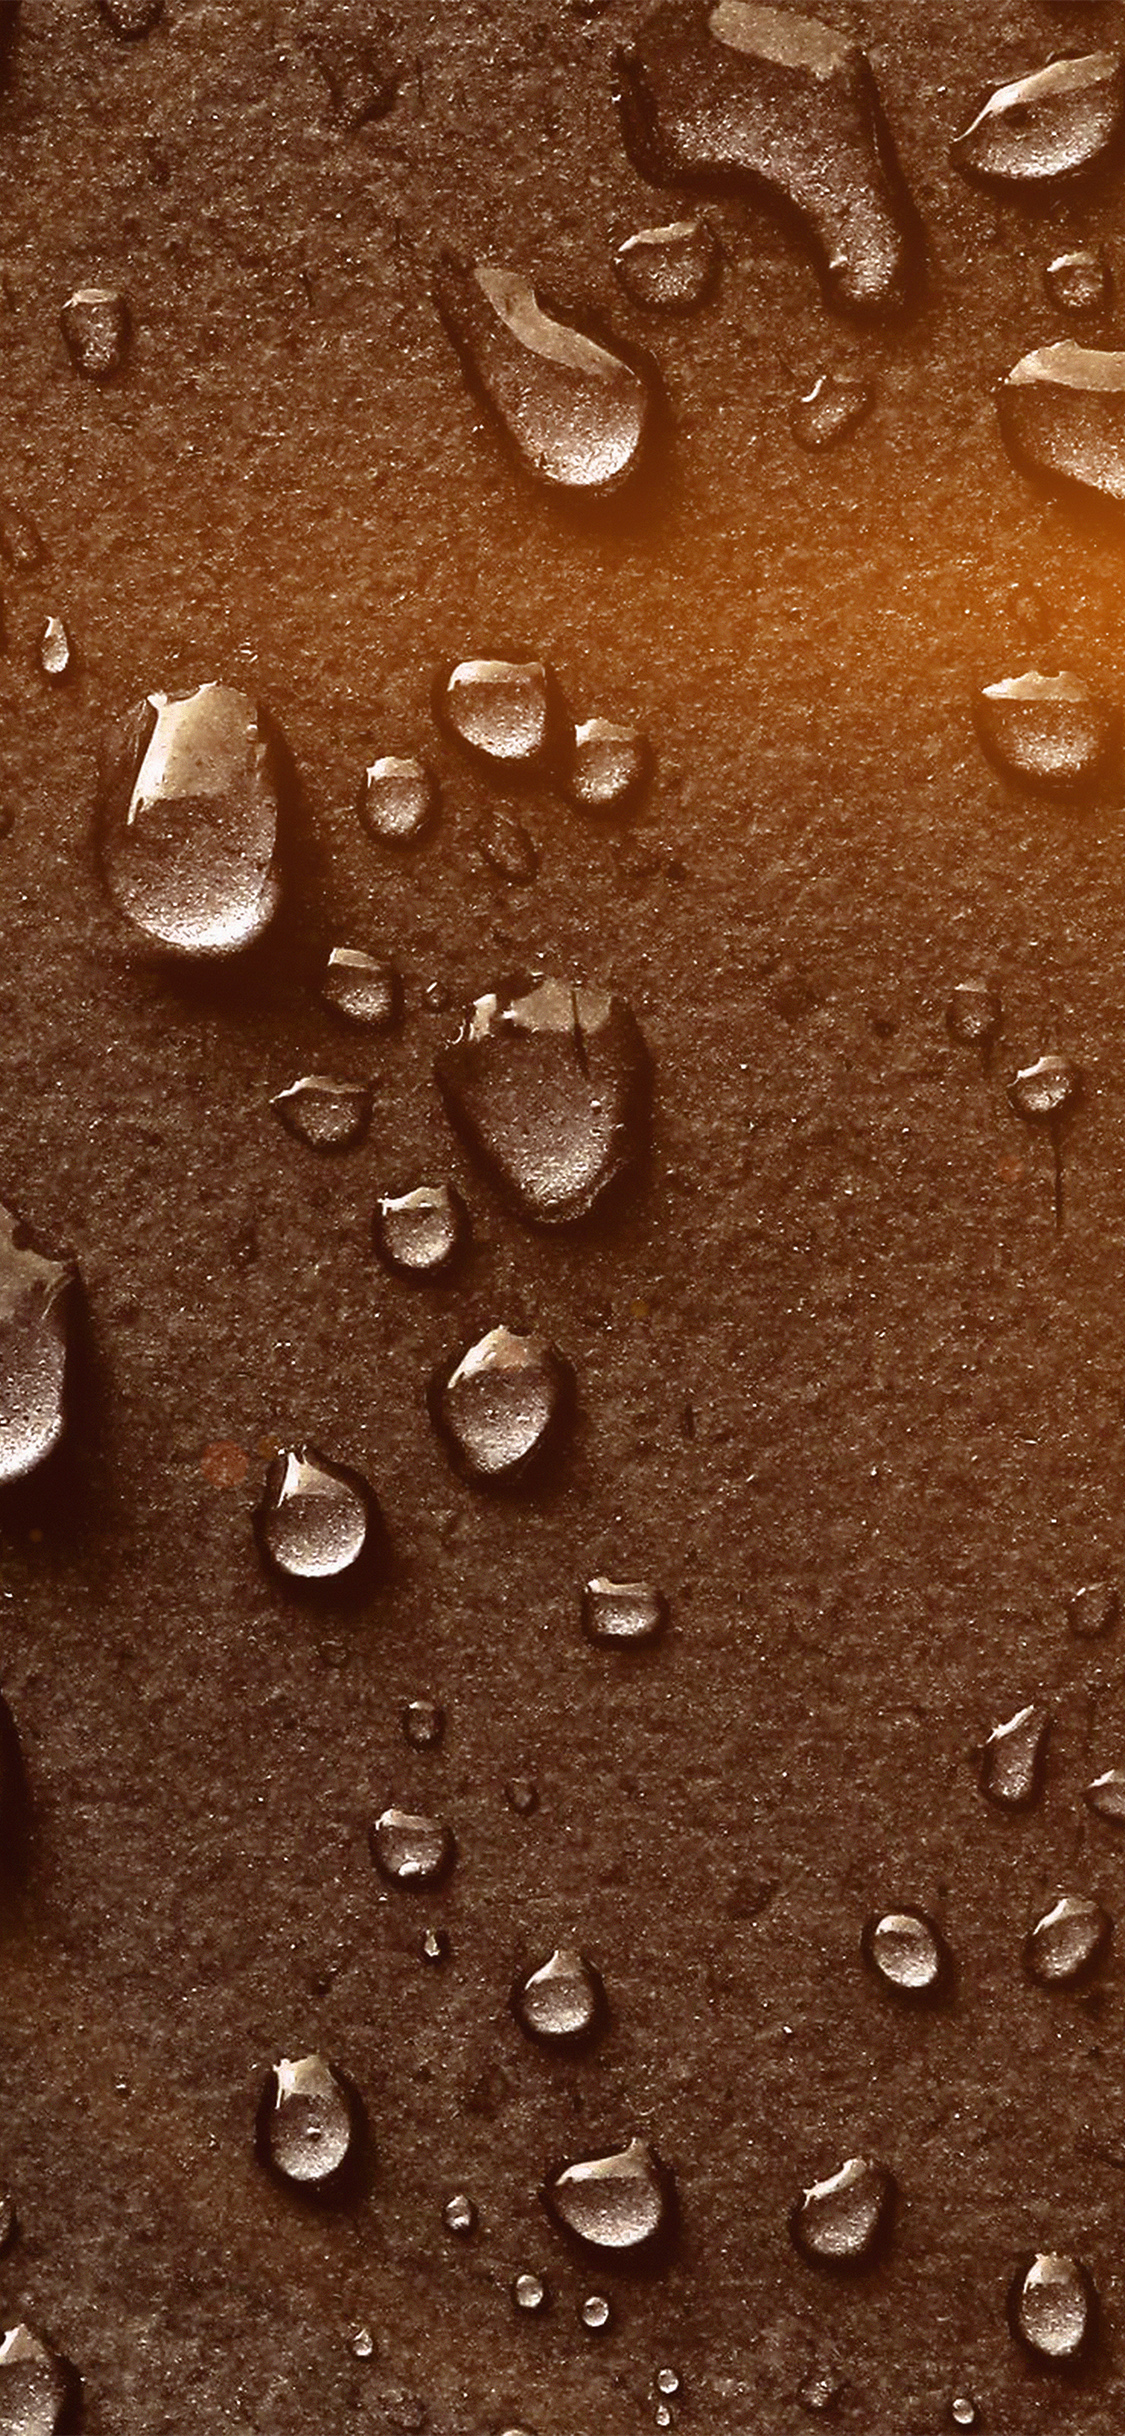 iPhoneXpapers.com-Apple-iPhone-wallpaper-vn36-drops-of-rain-brown-nature-texture-pattern-flare